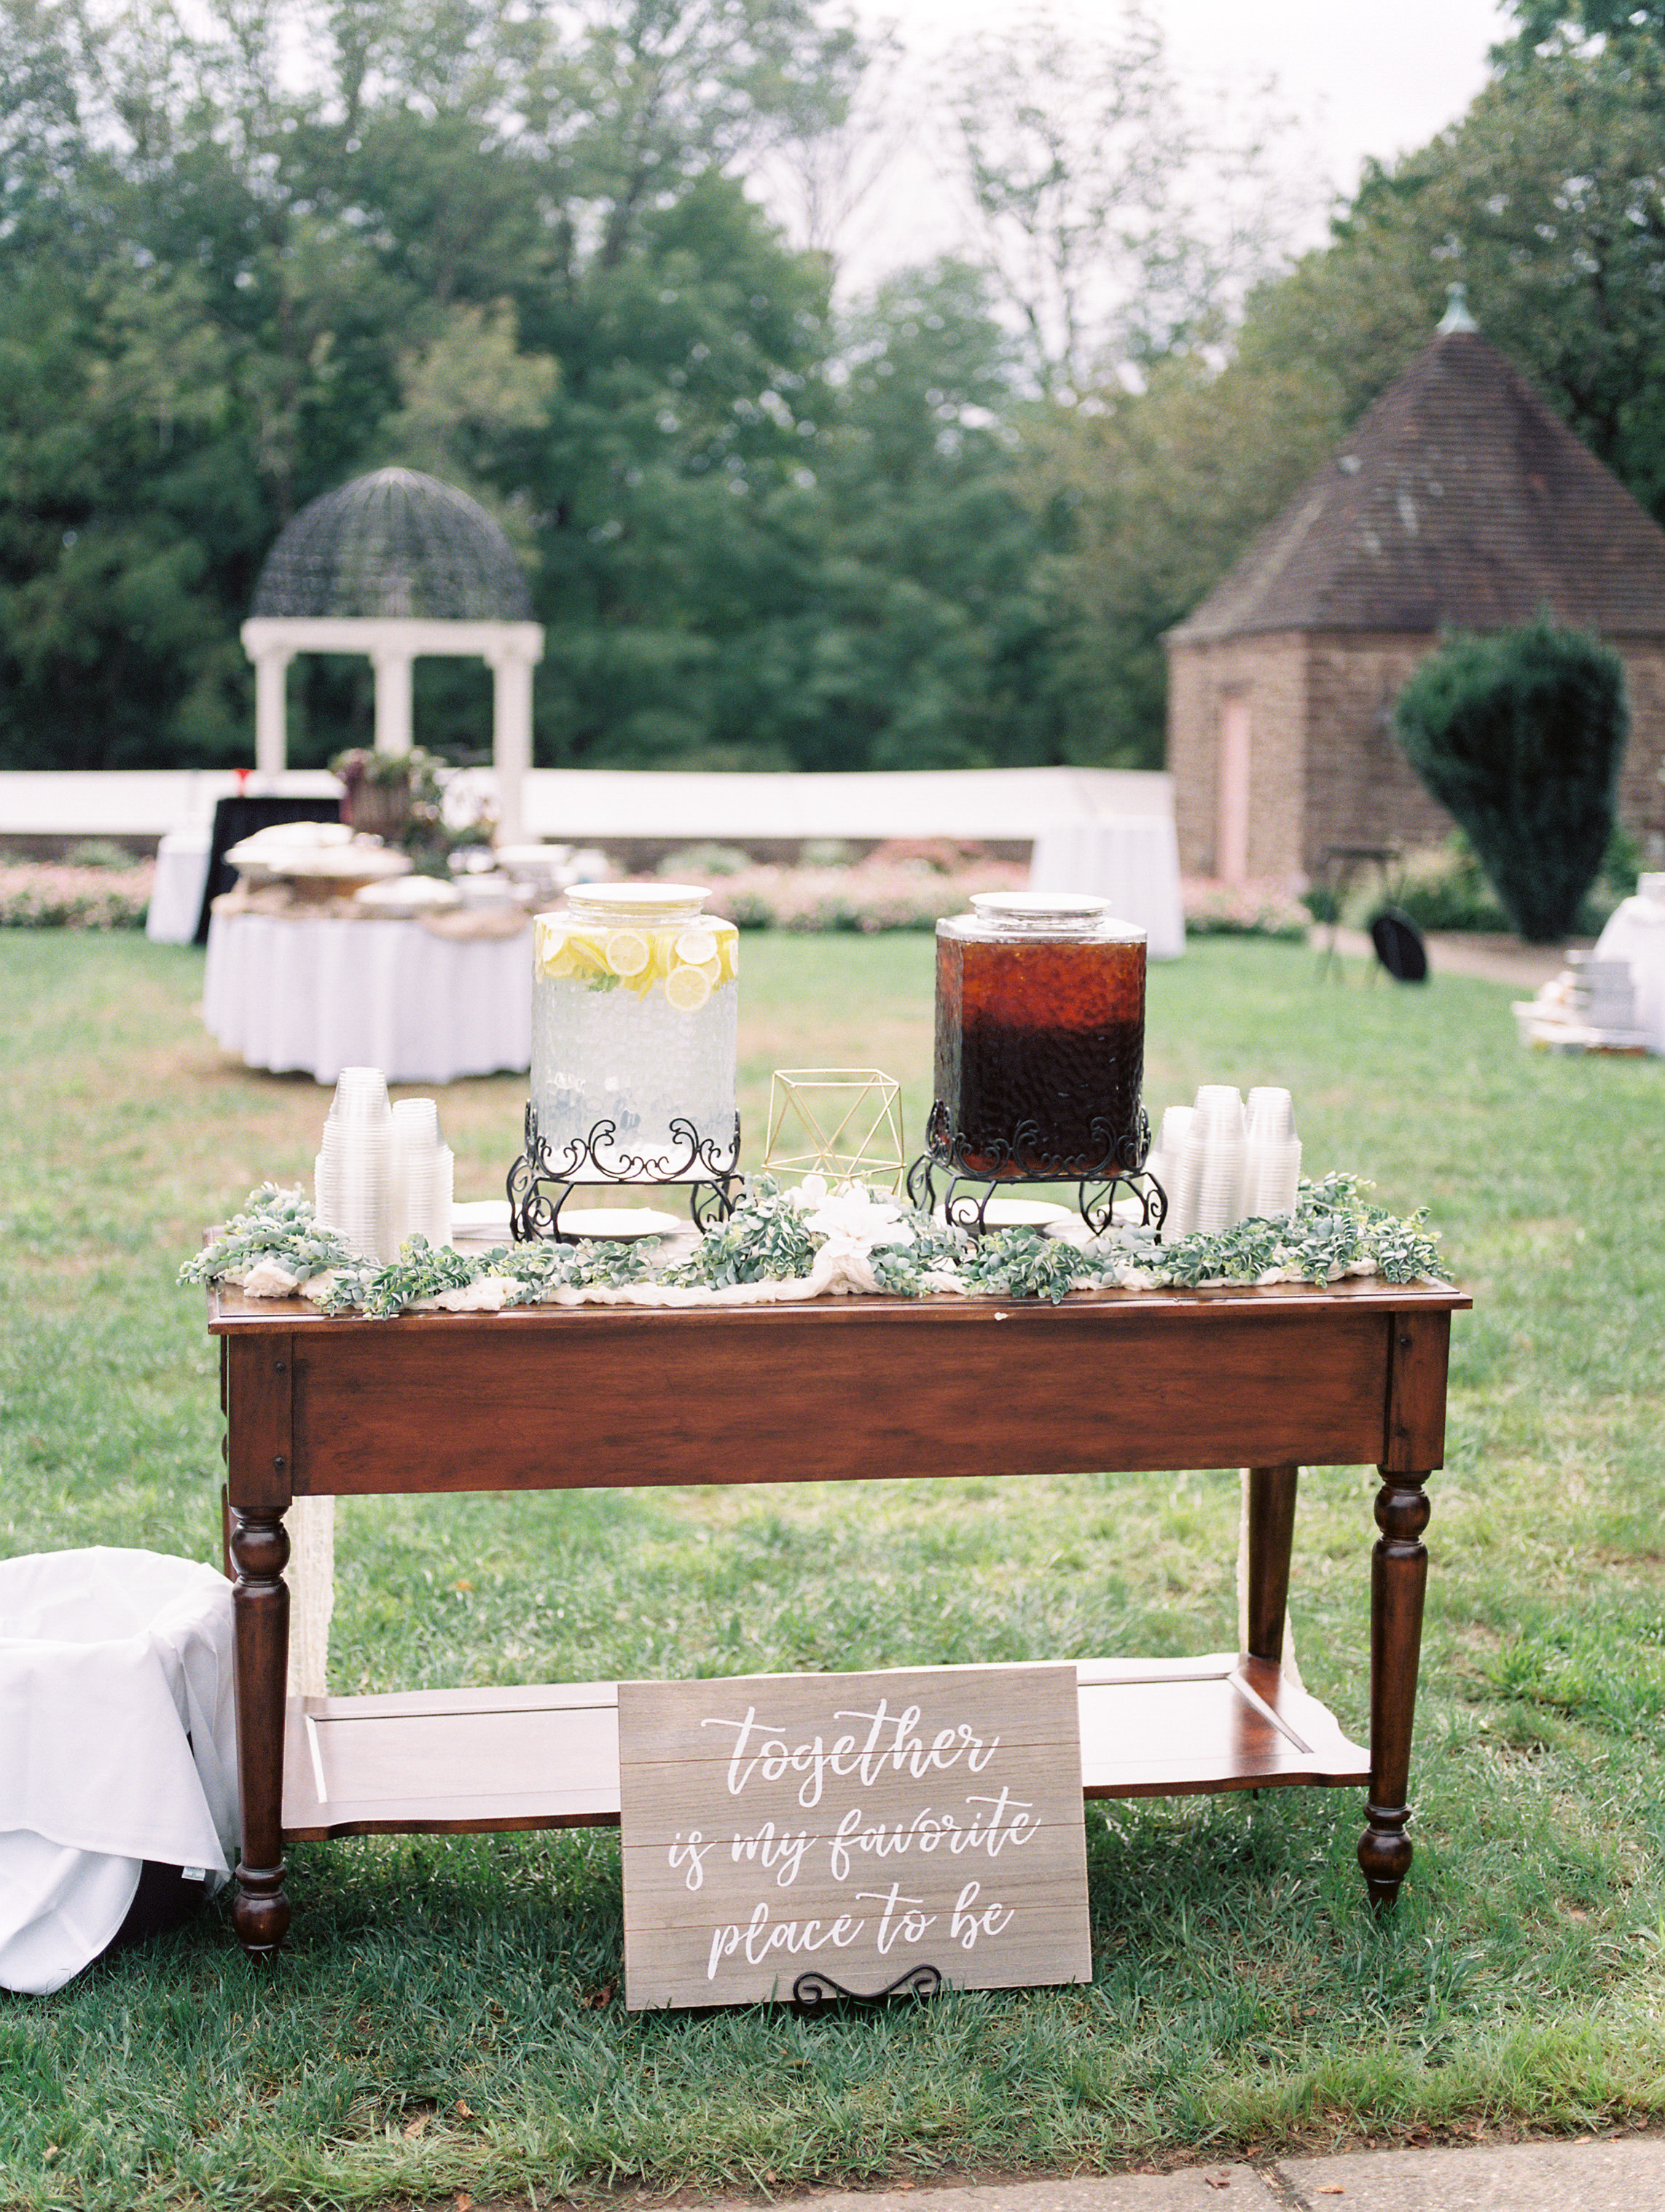 Refreshments await at this elegant cocktail hour set-up in the garden from this bright boho chic Tyler Gardens wedding in Bucks County